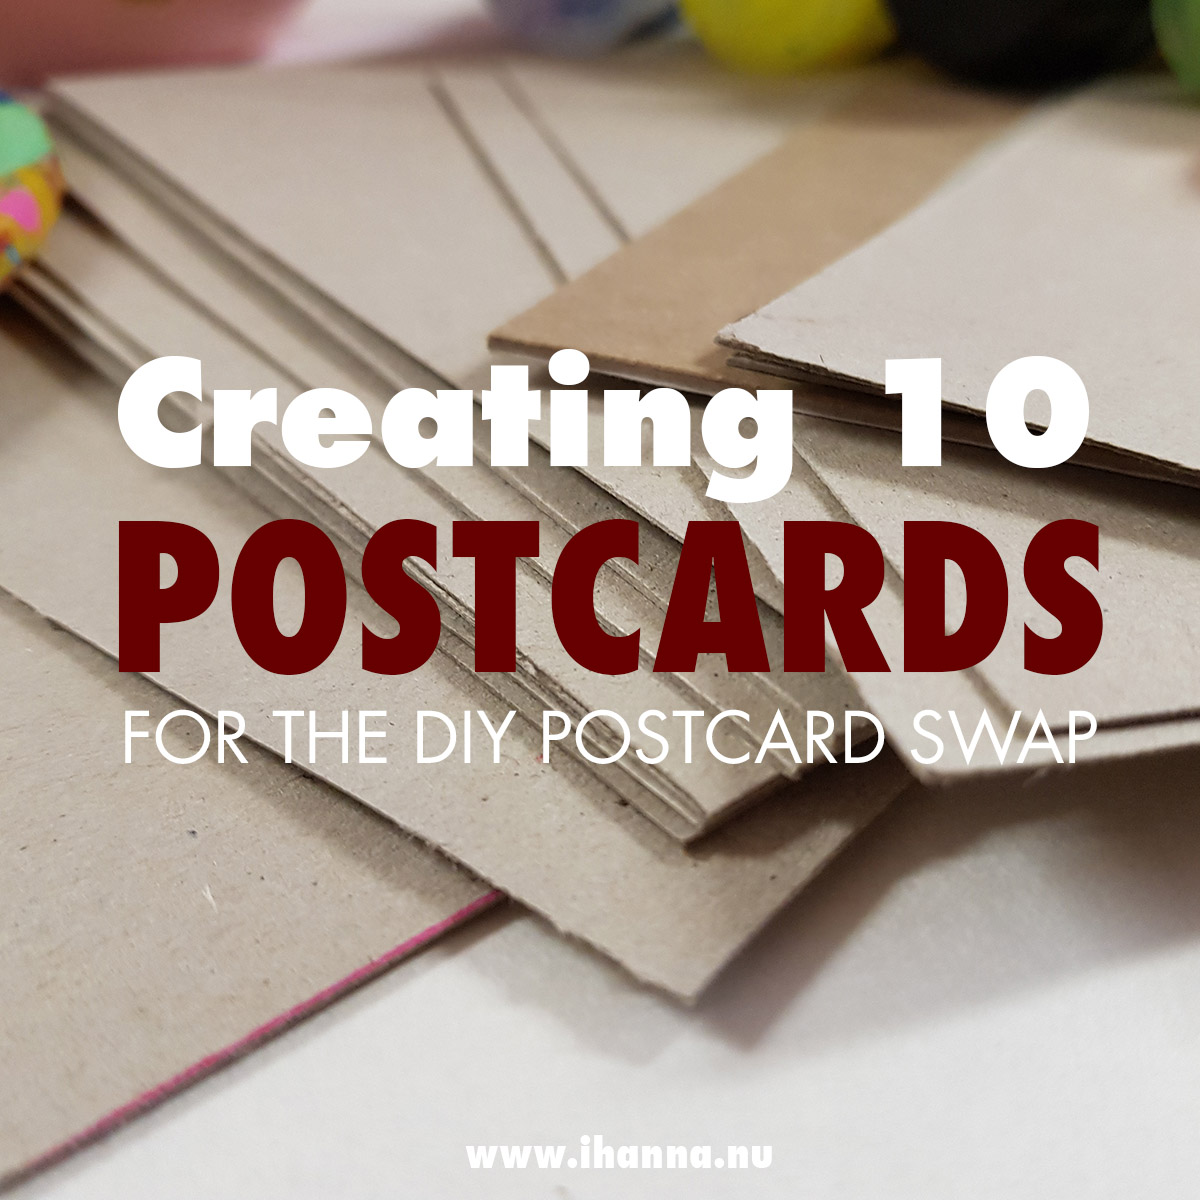 Getting started with my DIY Postcards